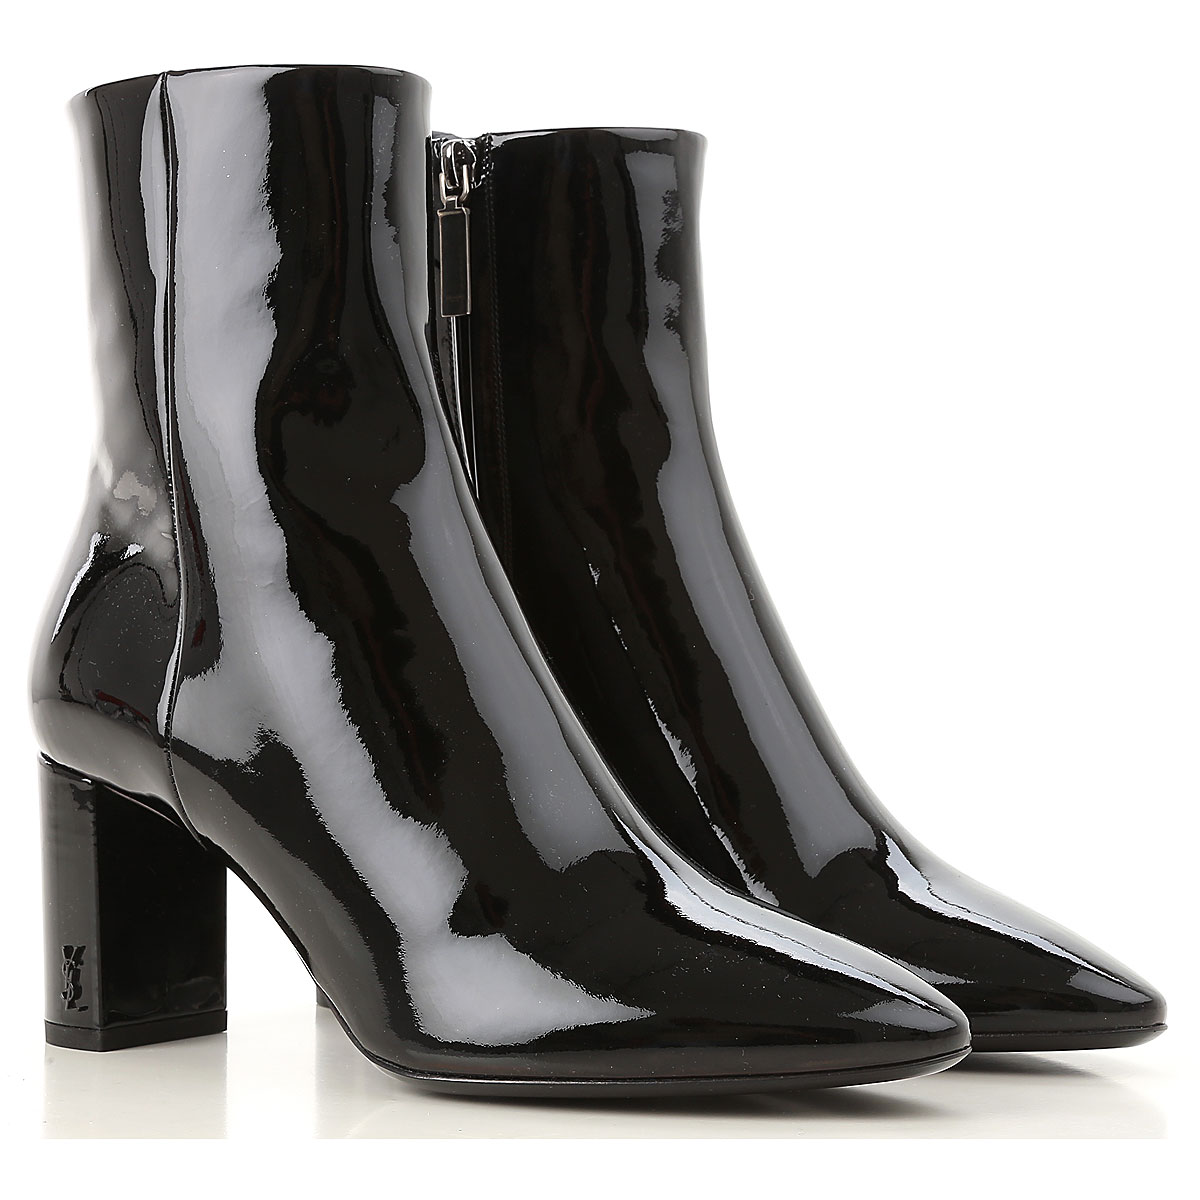 Yves Saint Laurent Boots for Women, Booties On Sale in Outlet, Black, Patent Leather, 2019, 5 5.5 6 9